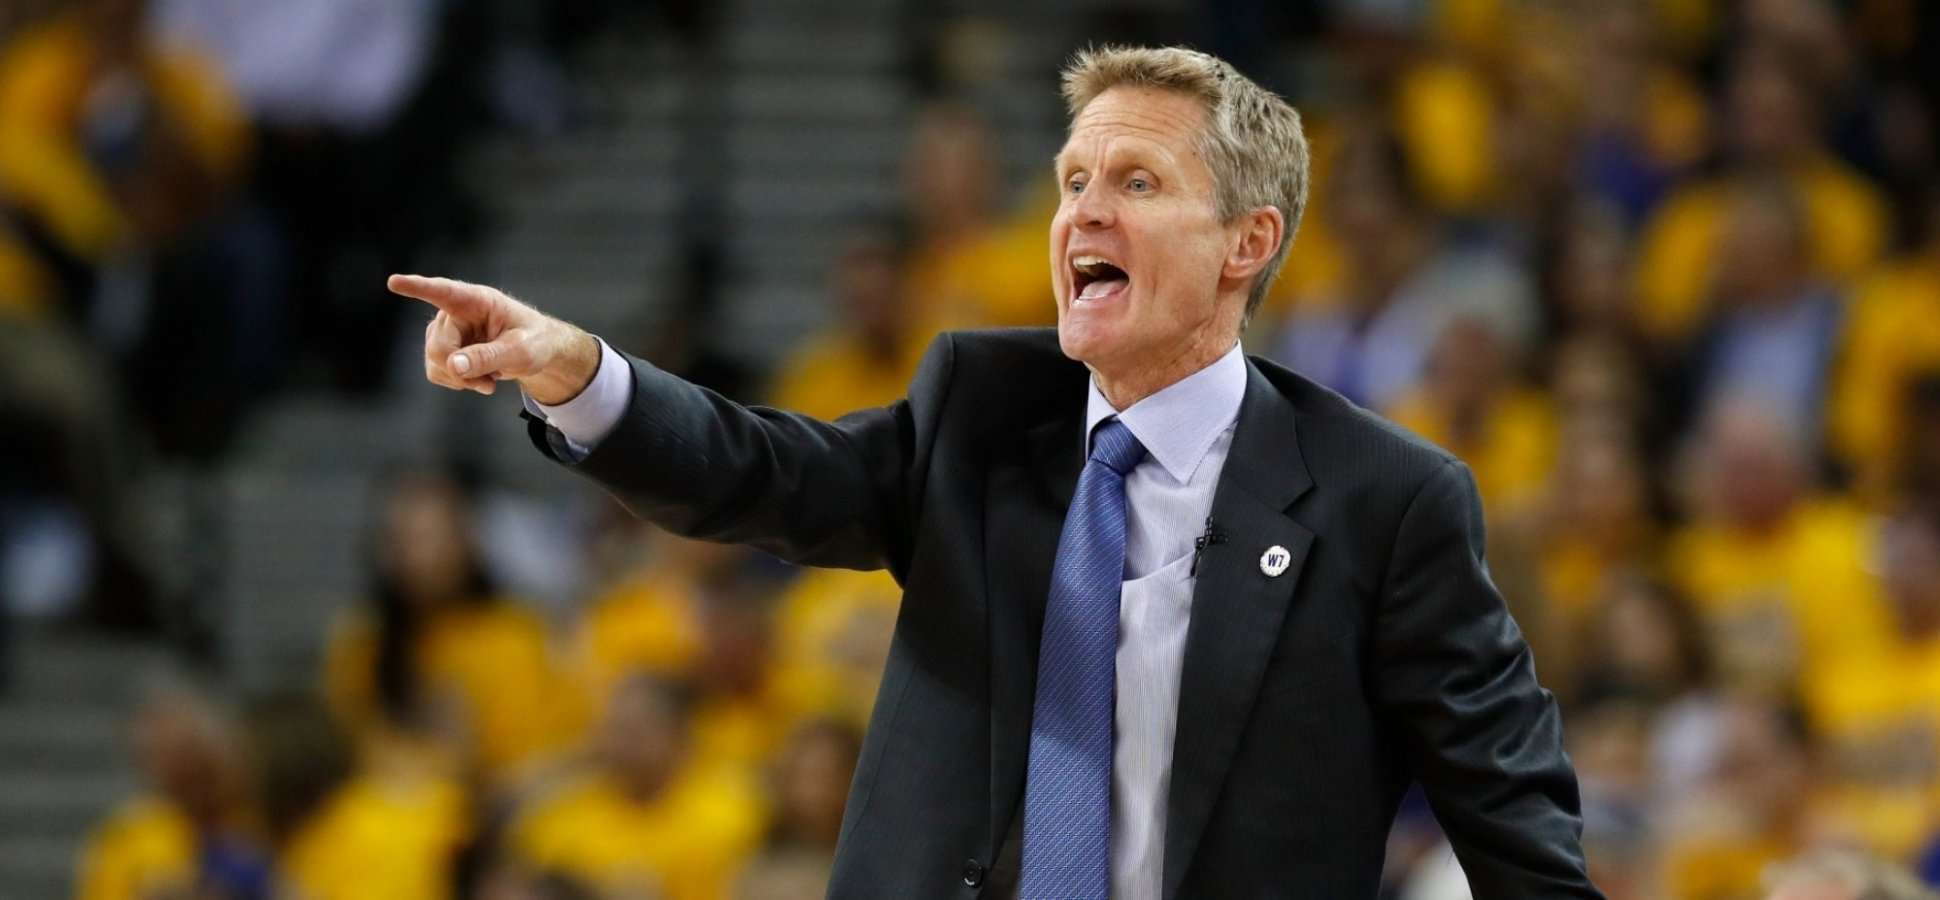 By Doing Something No One Expected, Golden State Warriors Coach Steve Kerr Taught a Brilliant Leadership Lesson